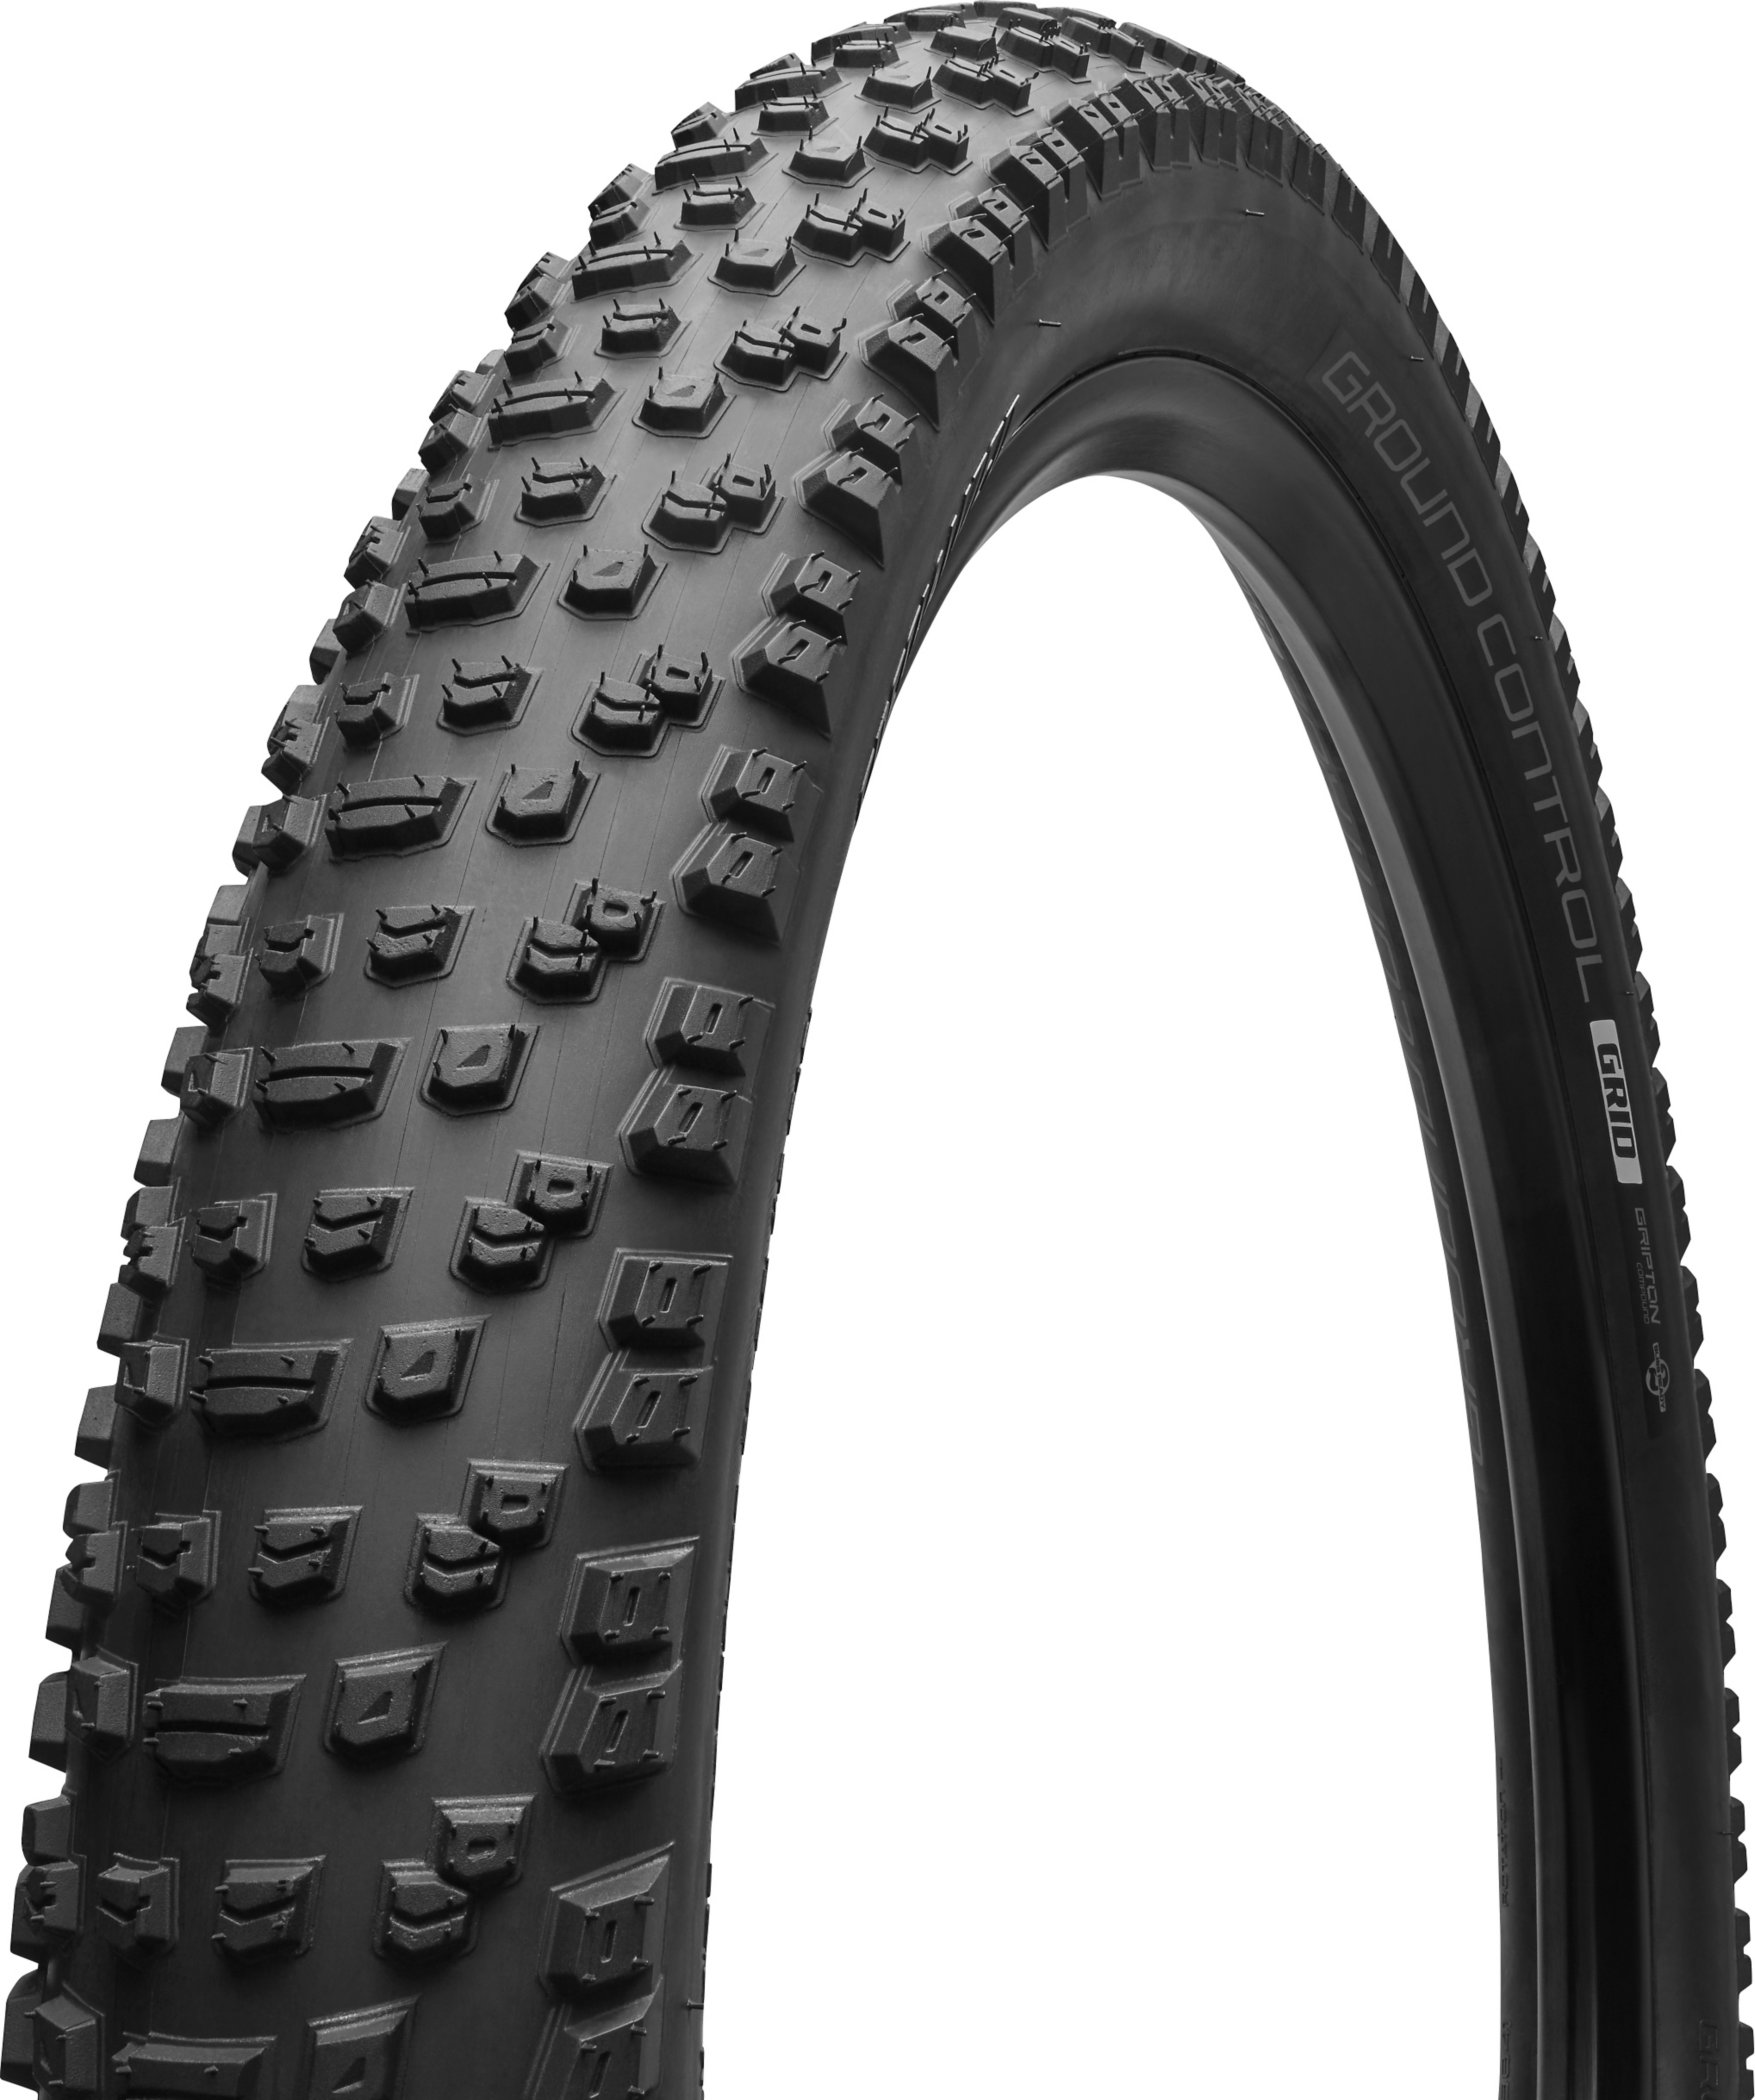 SPECIALIZED GROUND CONTROL GRID 2BR TIRE 26X2.3 - SPECIALIZED GROUND CONTROL GRID 2BR TIRE 26X2.3